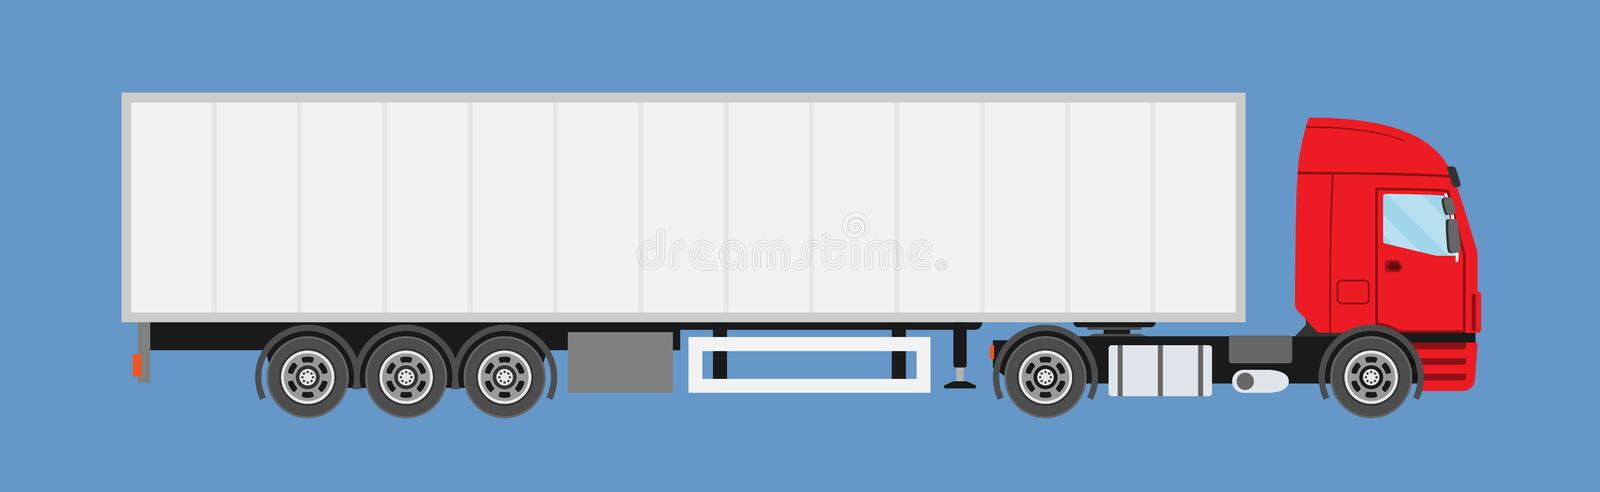 Big commercial semi truck with trailer. Trailer truck in flat style isolated. royalty free illustration